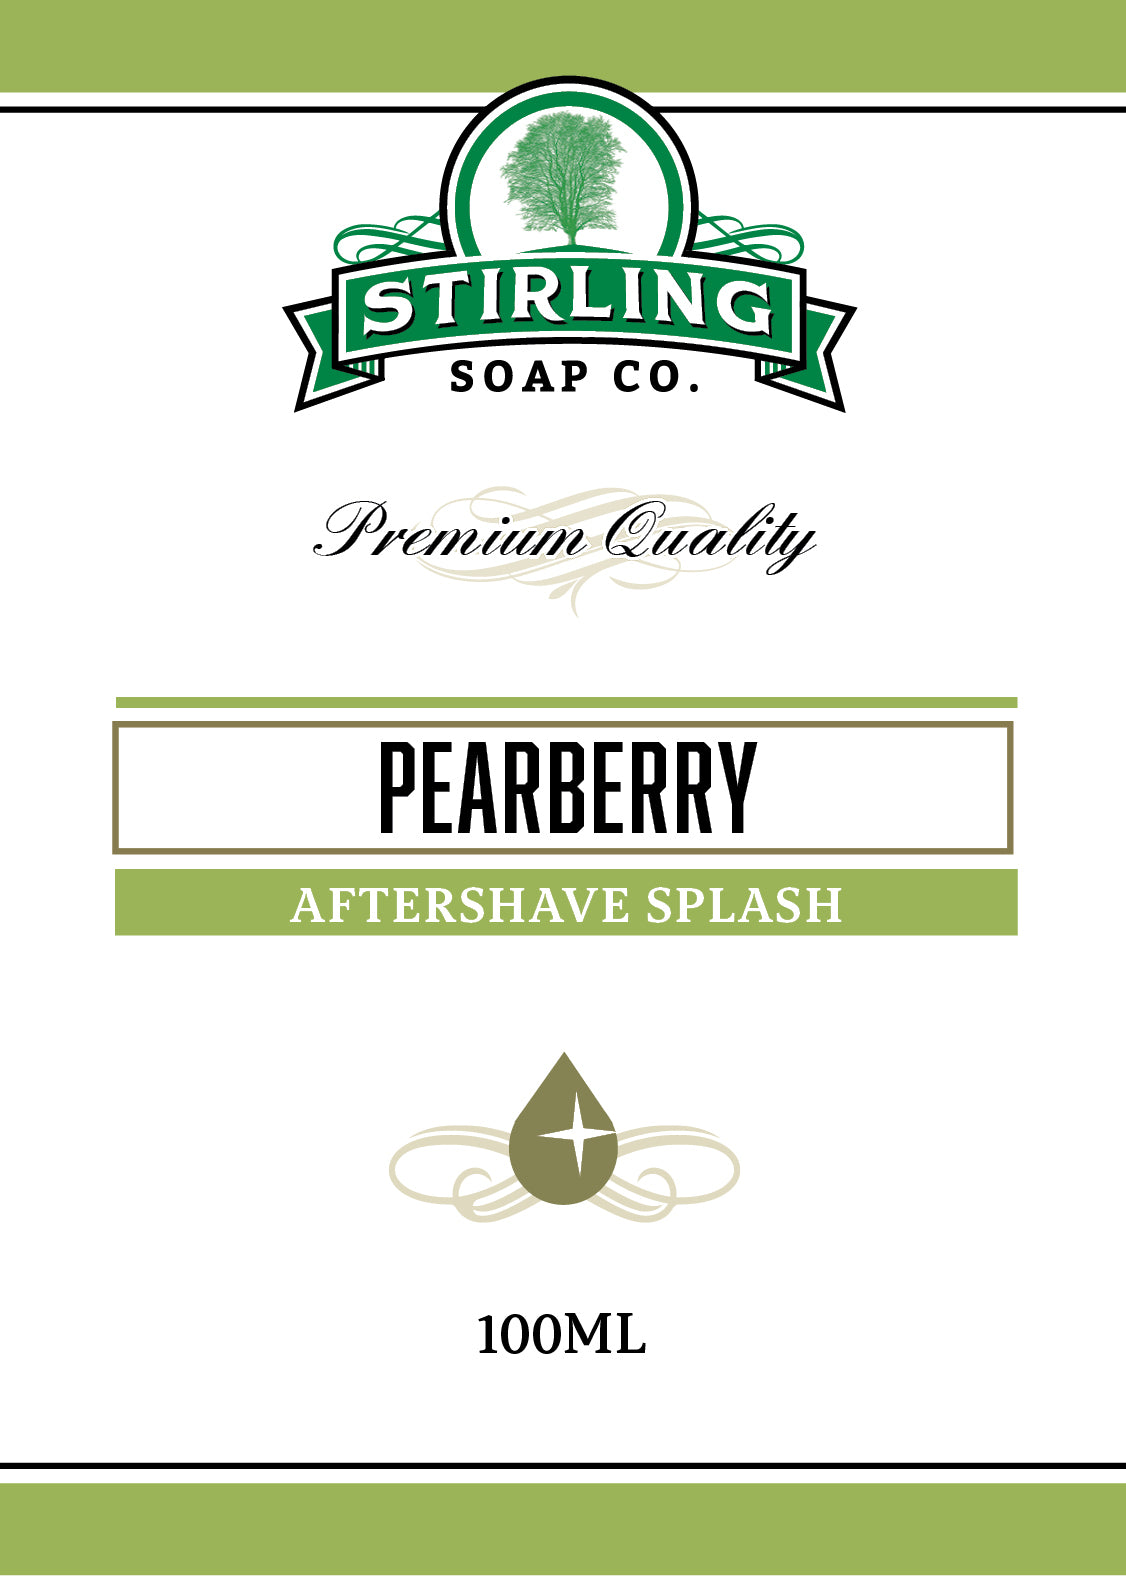 Pearberry - 100ml Aftershave Splash